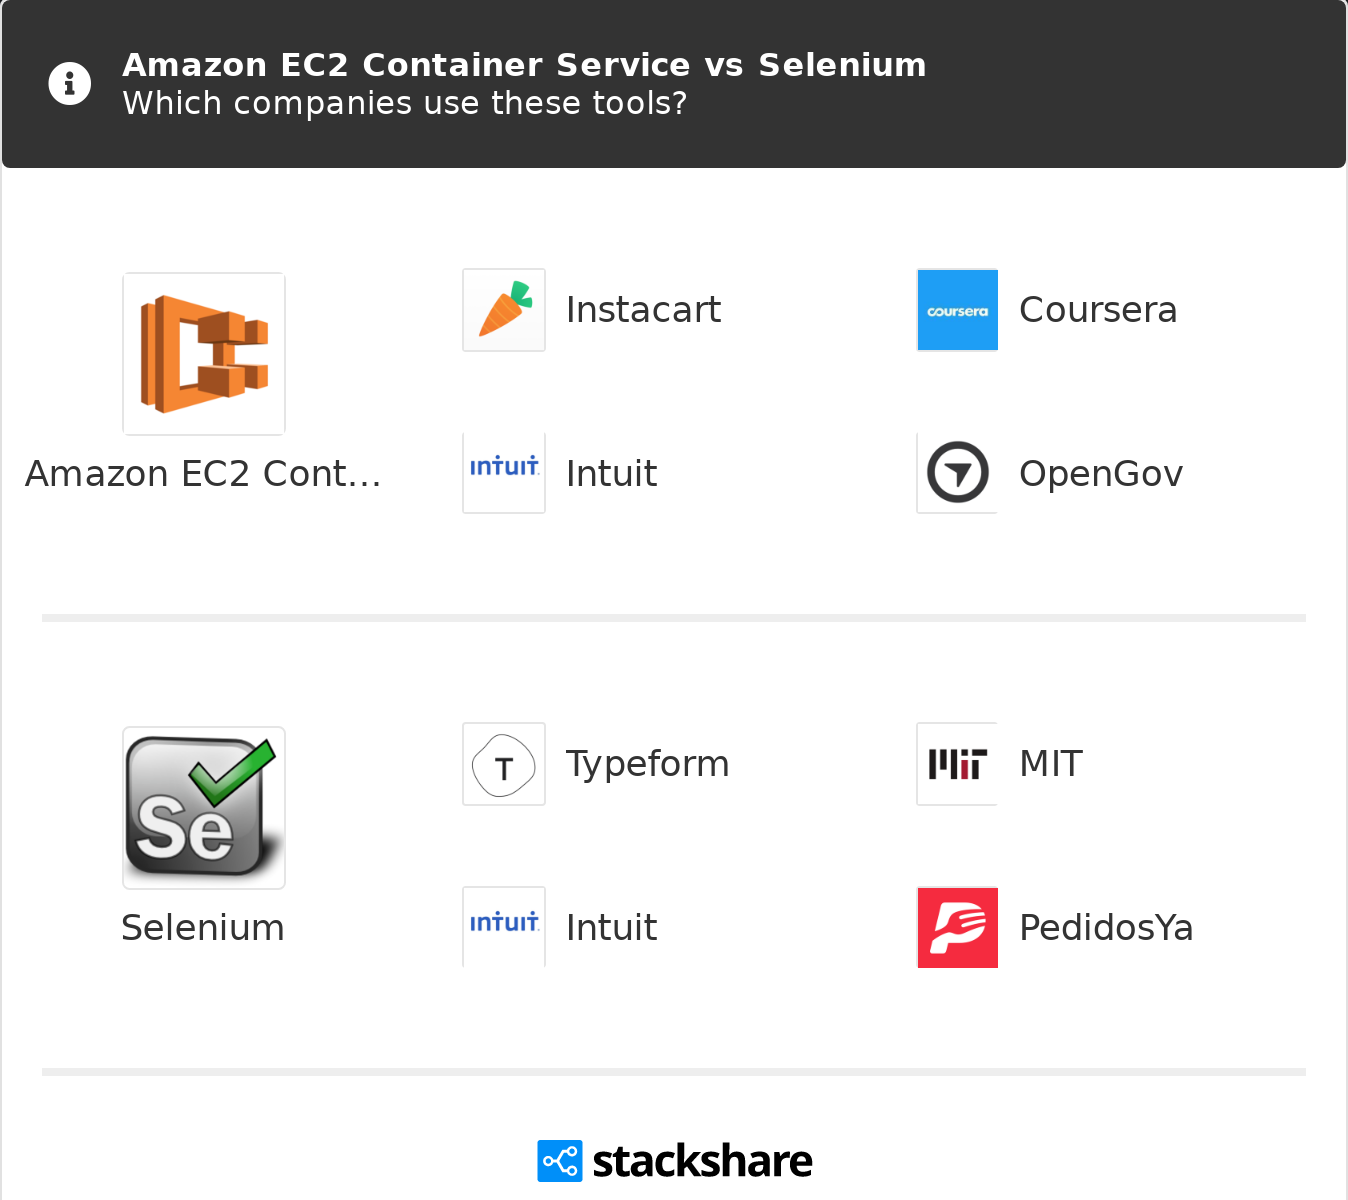 Amazon EC2 Container Service vs Selenium | What are the differences?